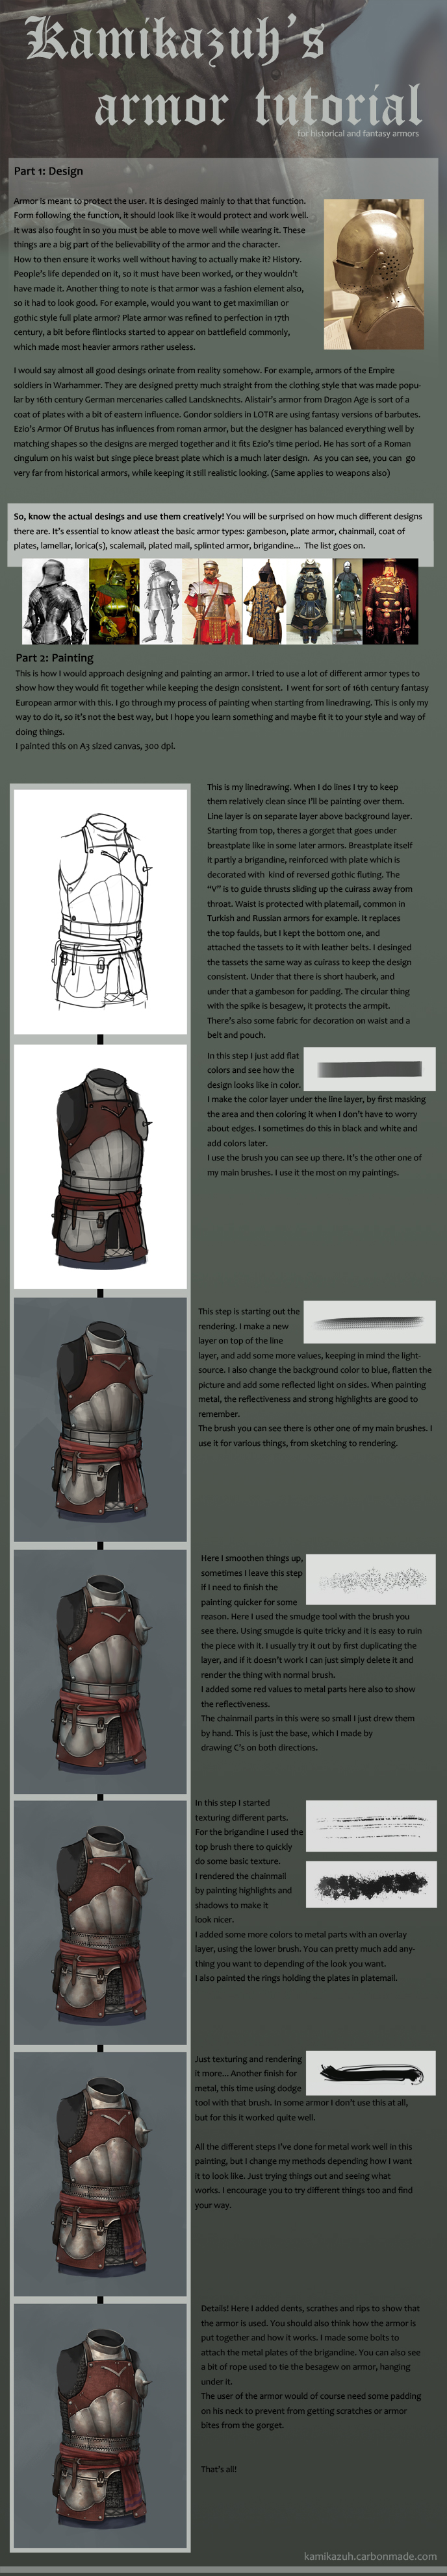 Armor Tutorial by Kamikazuh